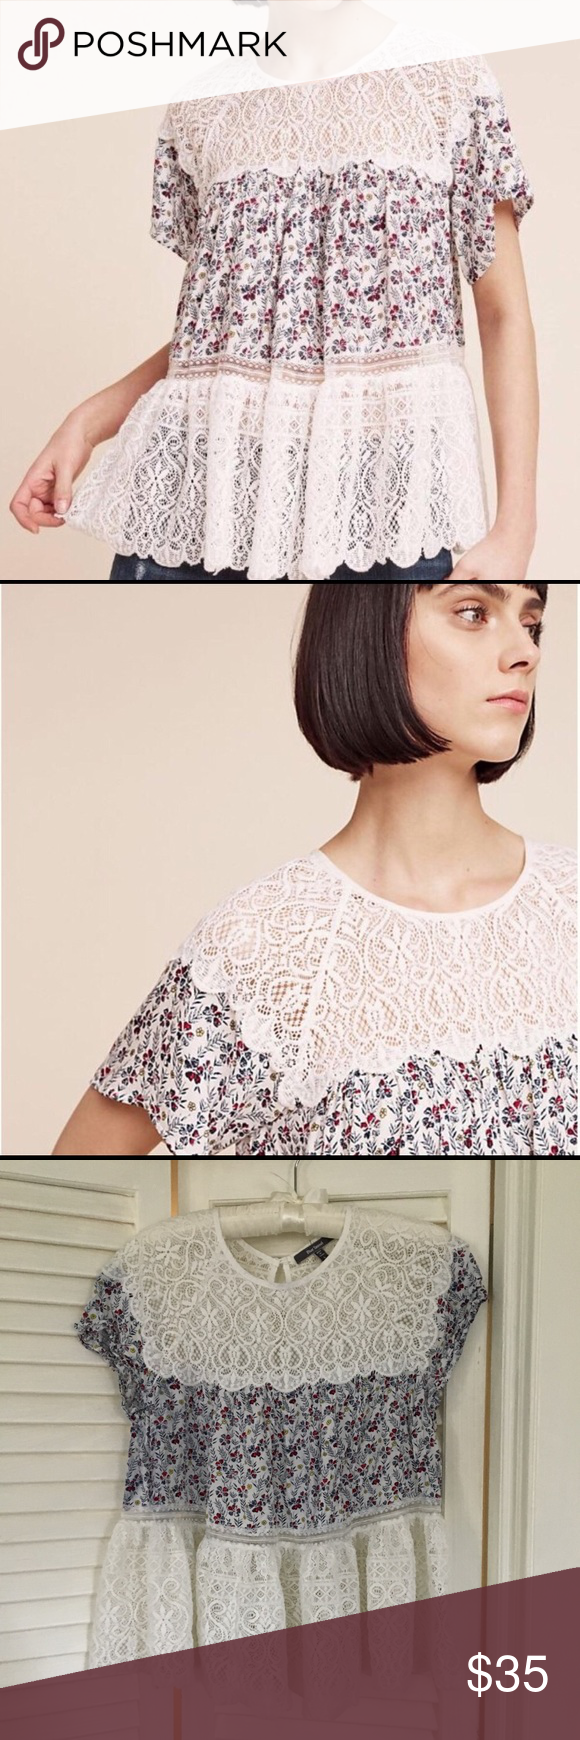 Anthropologie Blue Tassel Floral And Lace Top Flowy Floral Print And Lace Top Loose Peplum At Waist Generously Sized A Clothes Design Lace Top Fashion Design